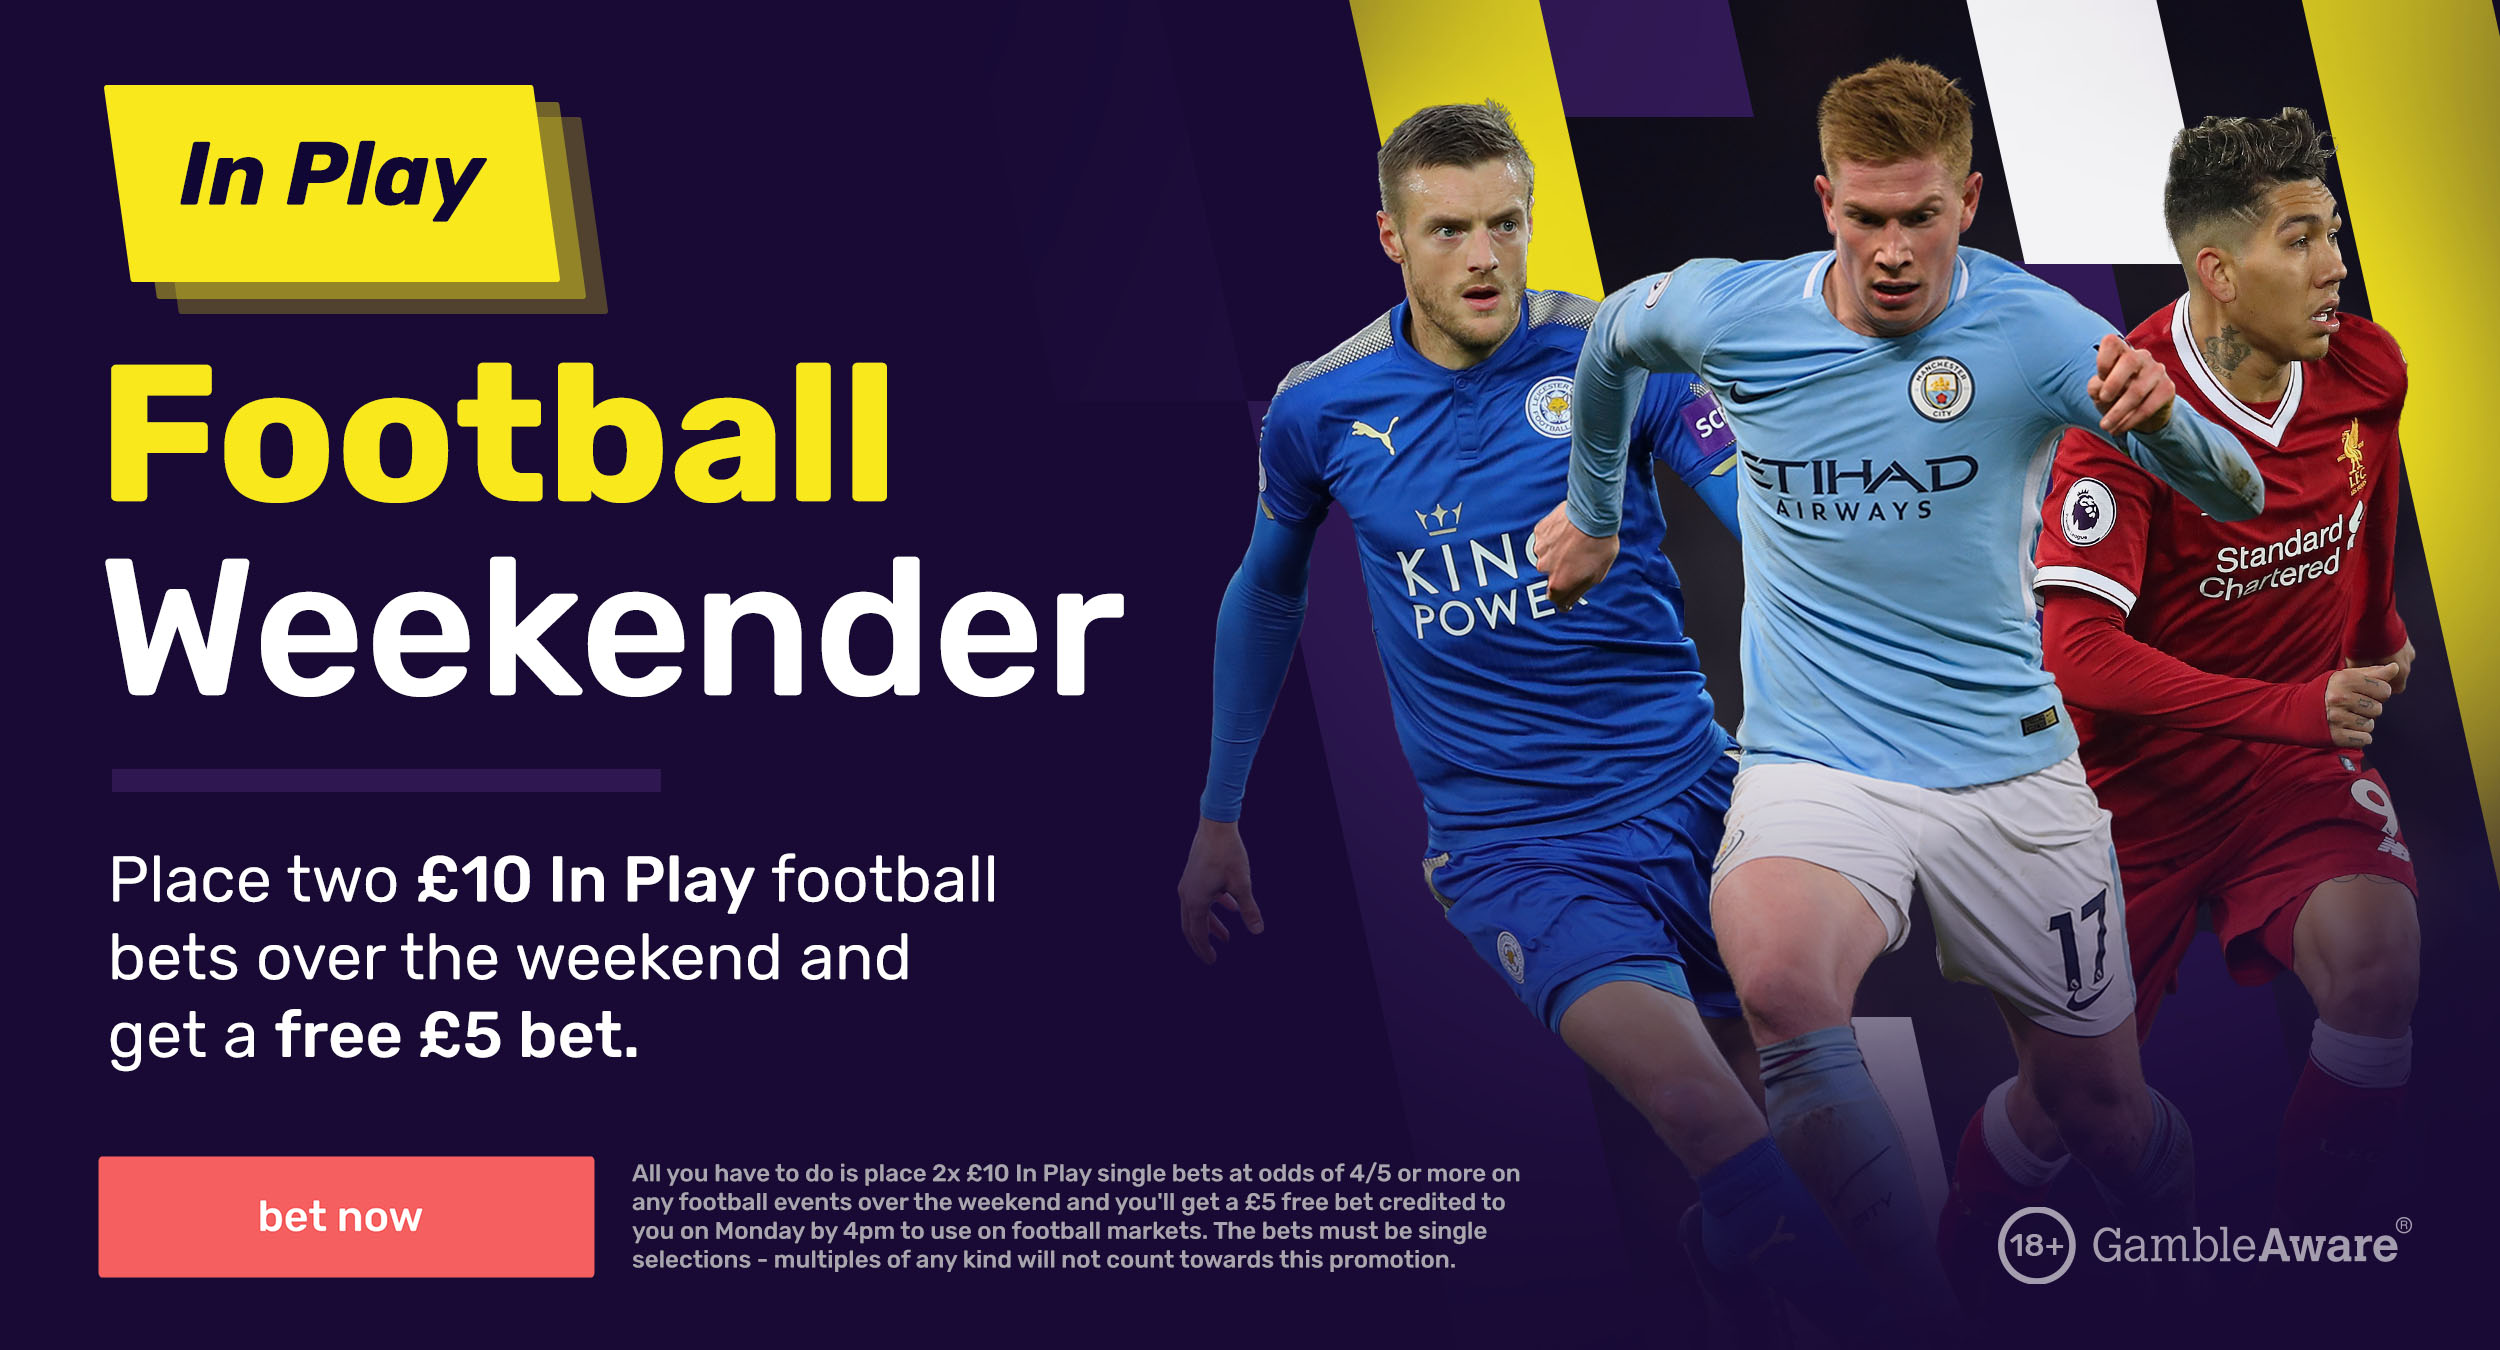 In-Play Football Weekender from dabblebet